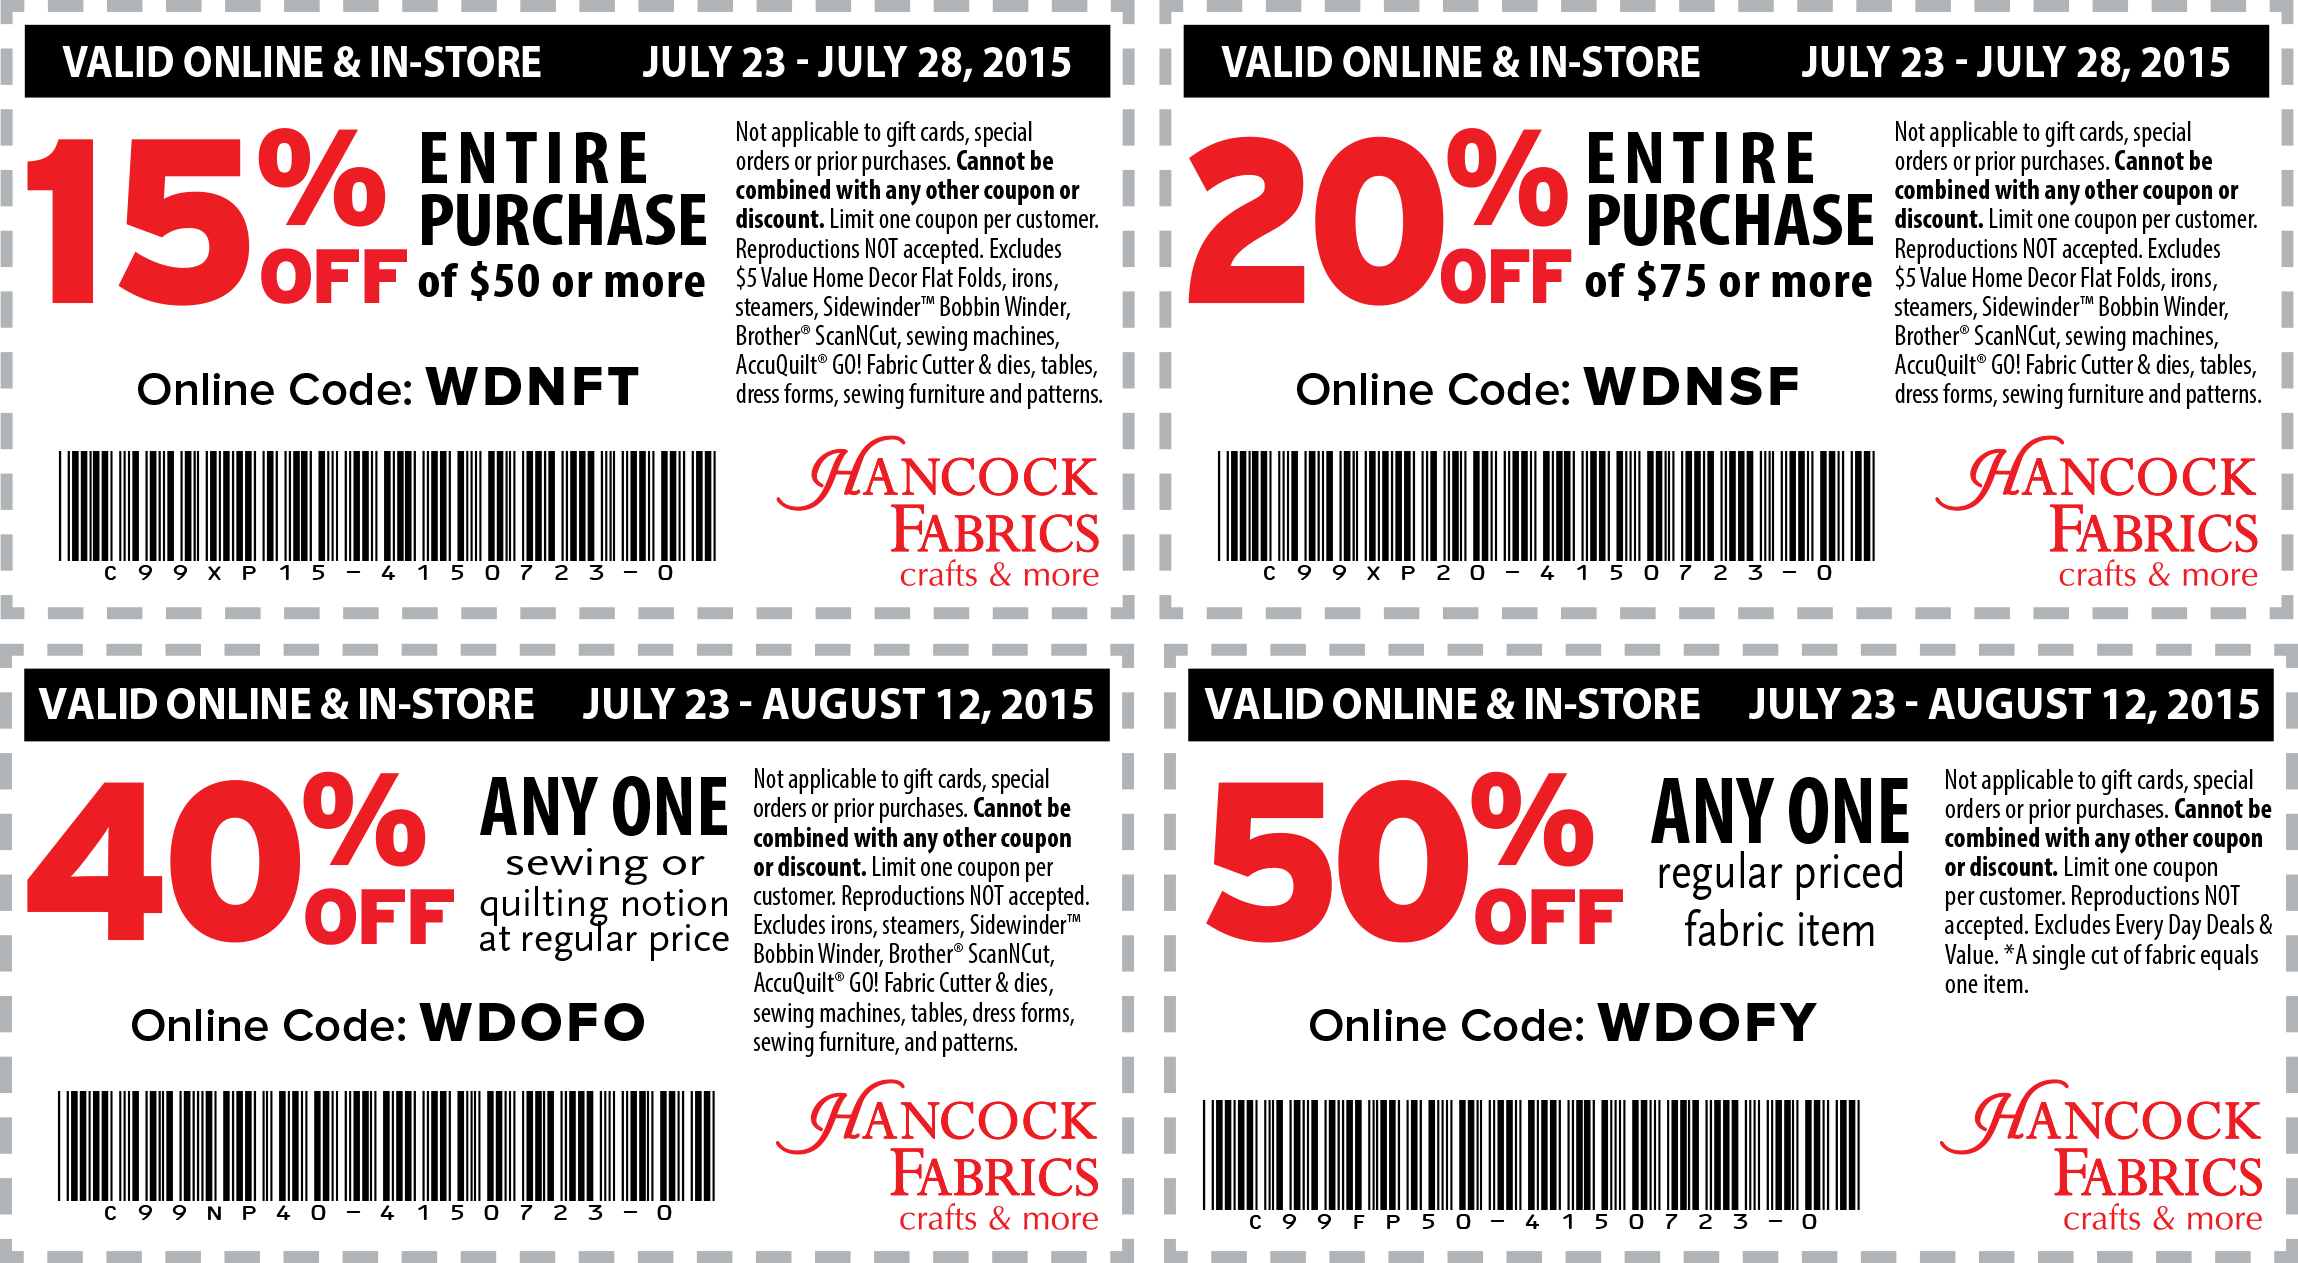 Hancock Fabrics Coupon September 2018 50% off a single item & more at Hancock Fabrics, or online via promo code WDOFY